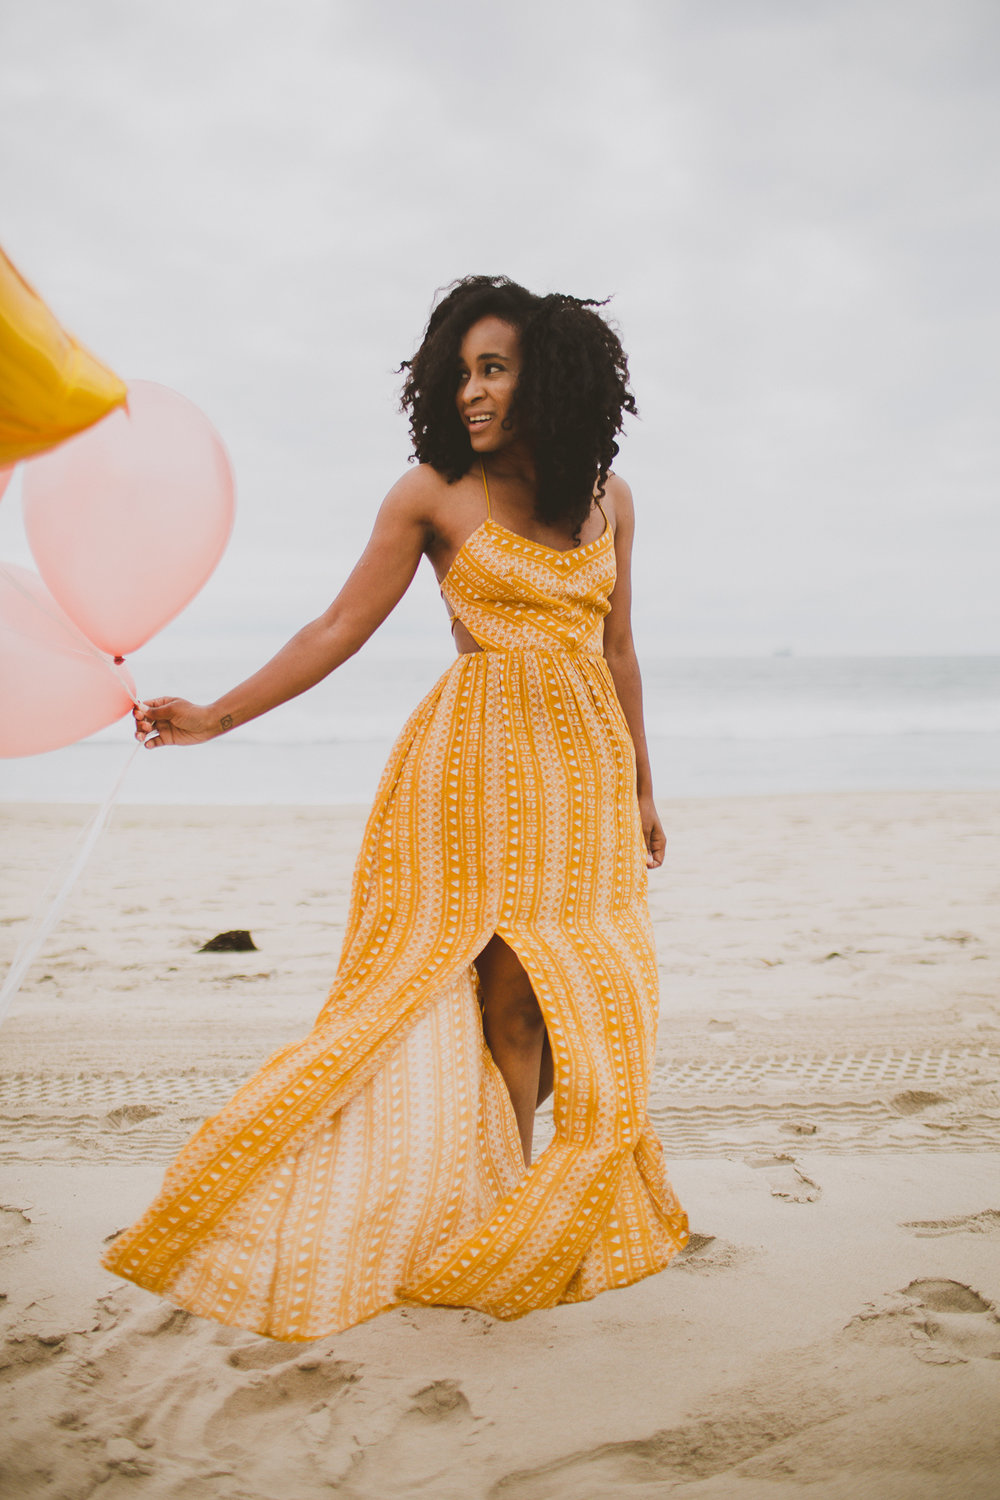 manhattan-beach-yellow-maxi-birthday-shoot-kelley-raye-los-angeles-atlanta-branding-photographer-4.jpg